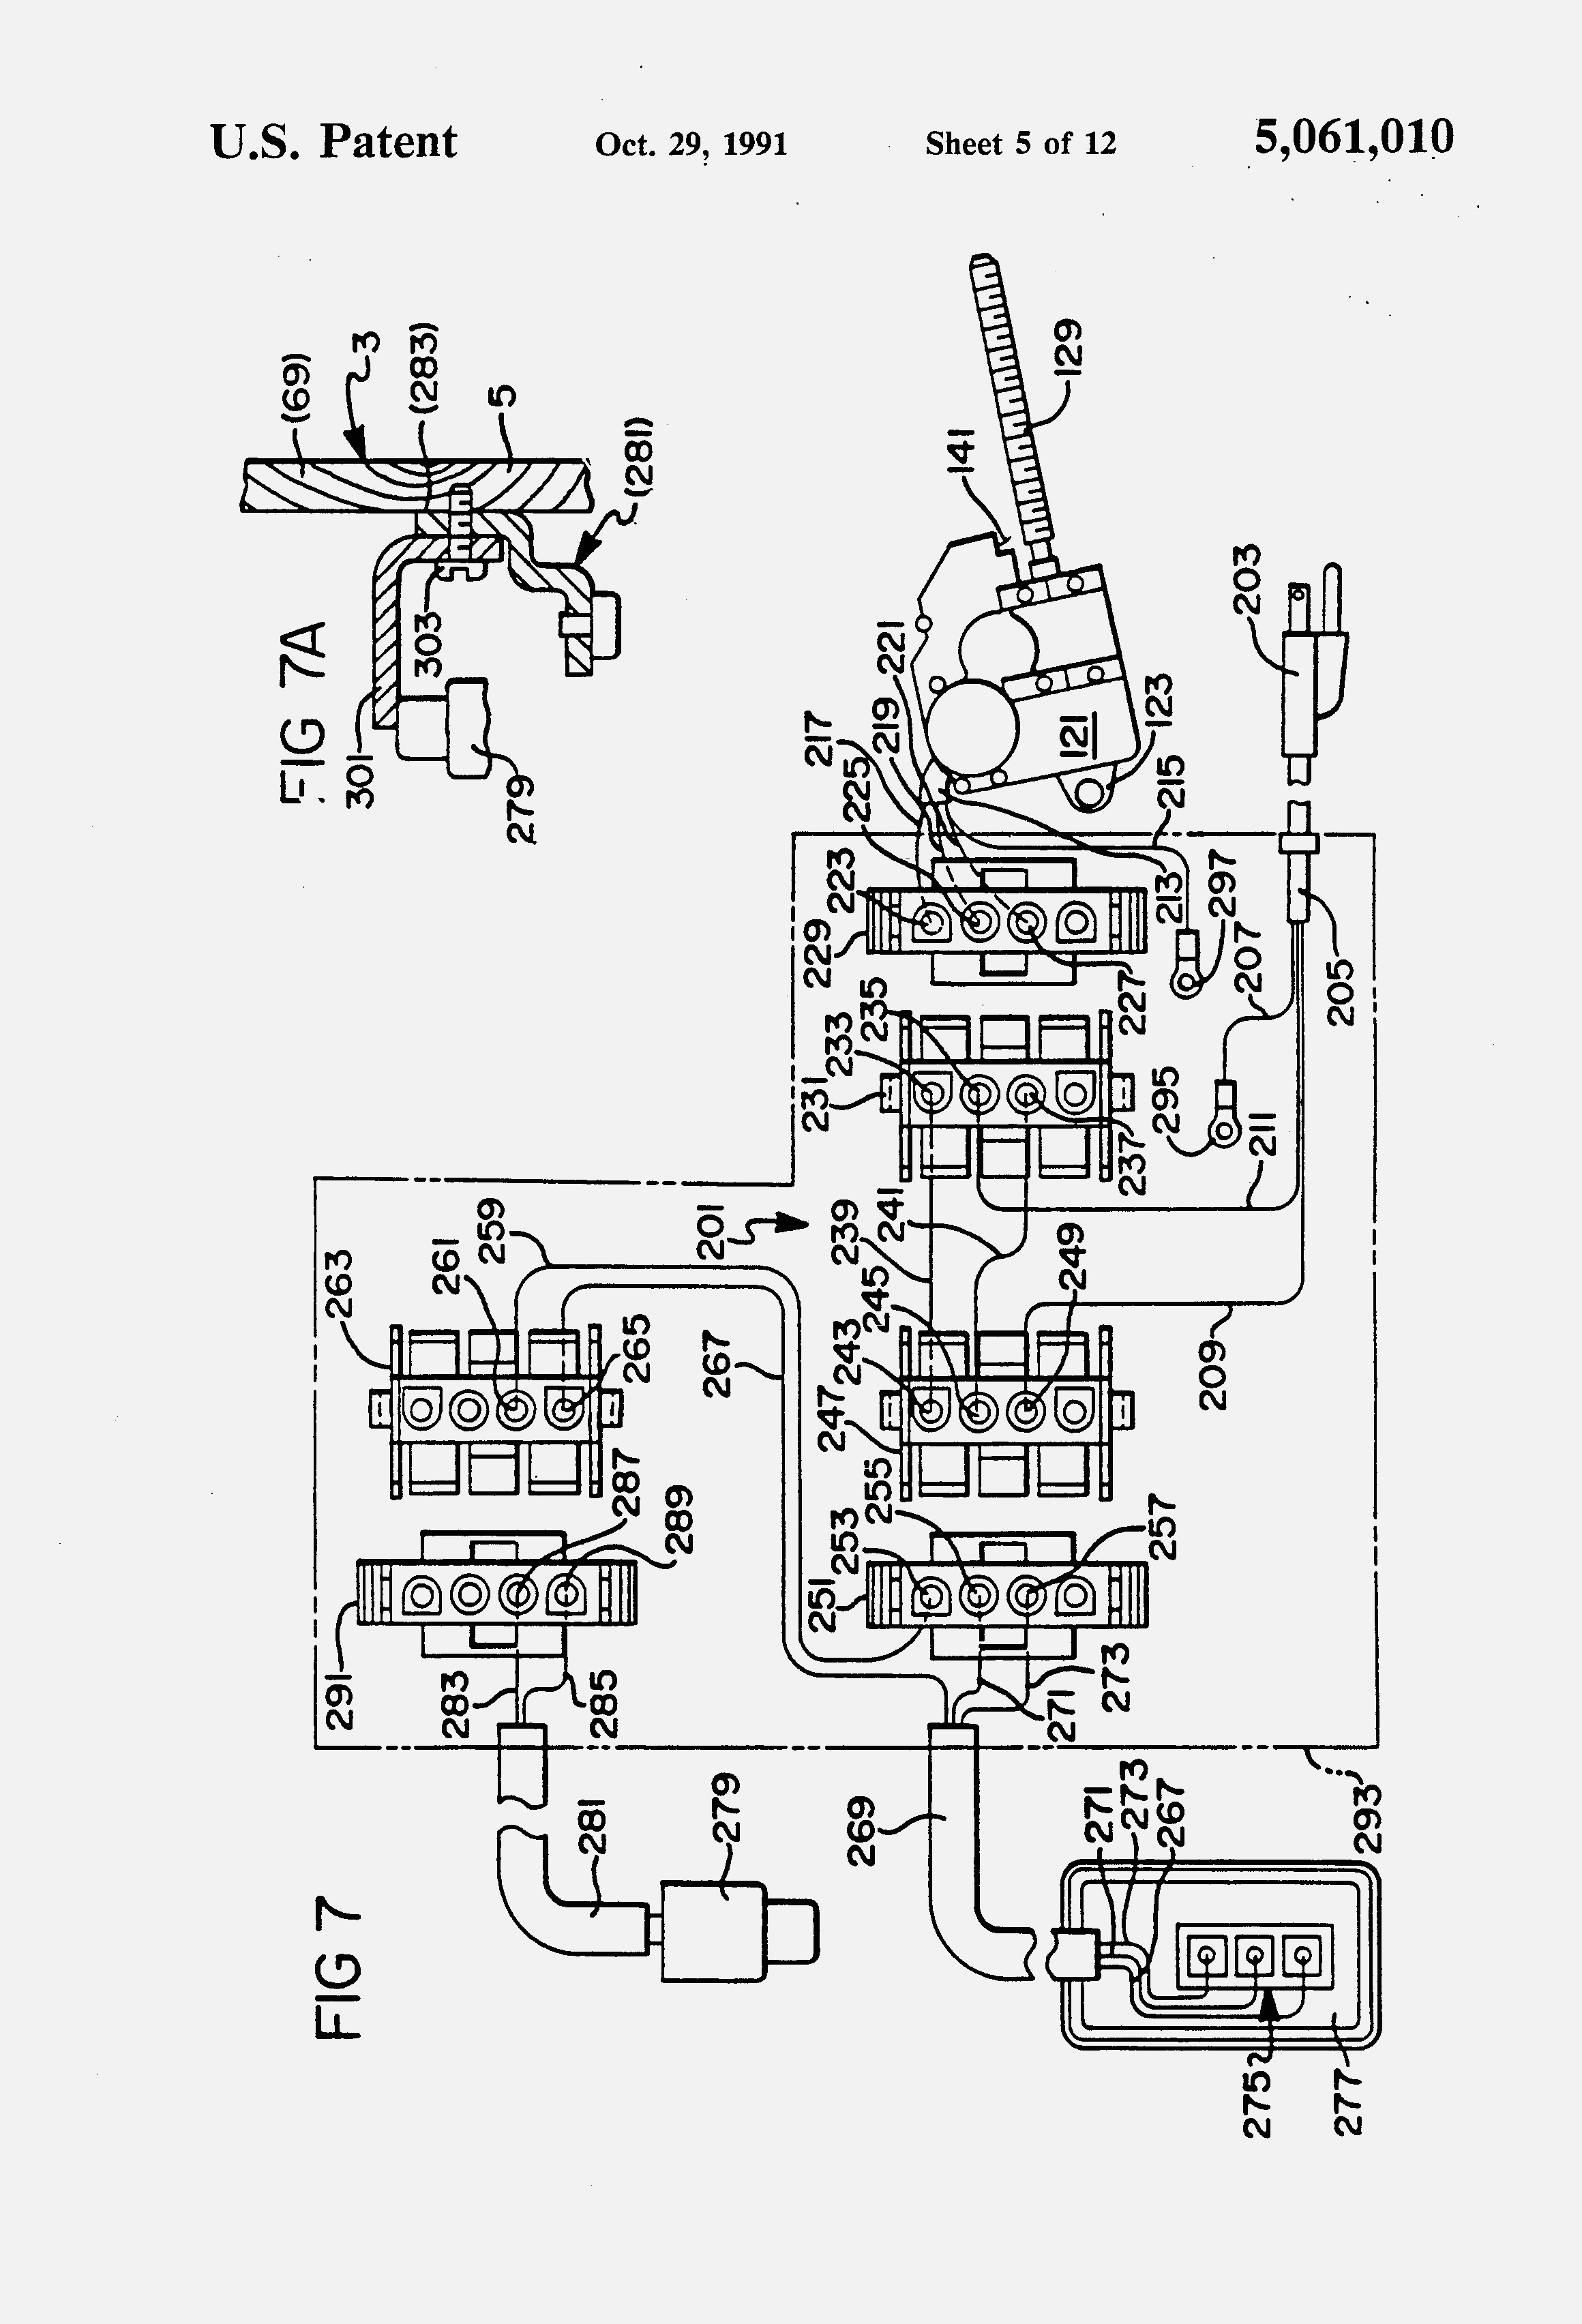 okin lift chair wiring diagram Collection-okin lift chair wiring diagram Collection Okin Lift Chair Parts Elegant Diagram Motor Wiring Brilliant DOWNLOAD Wiring Diagram 7-n